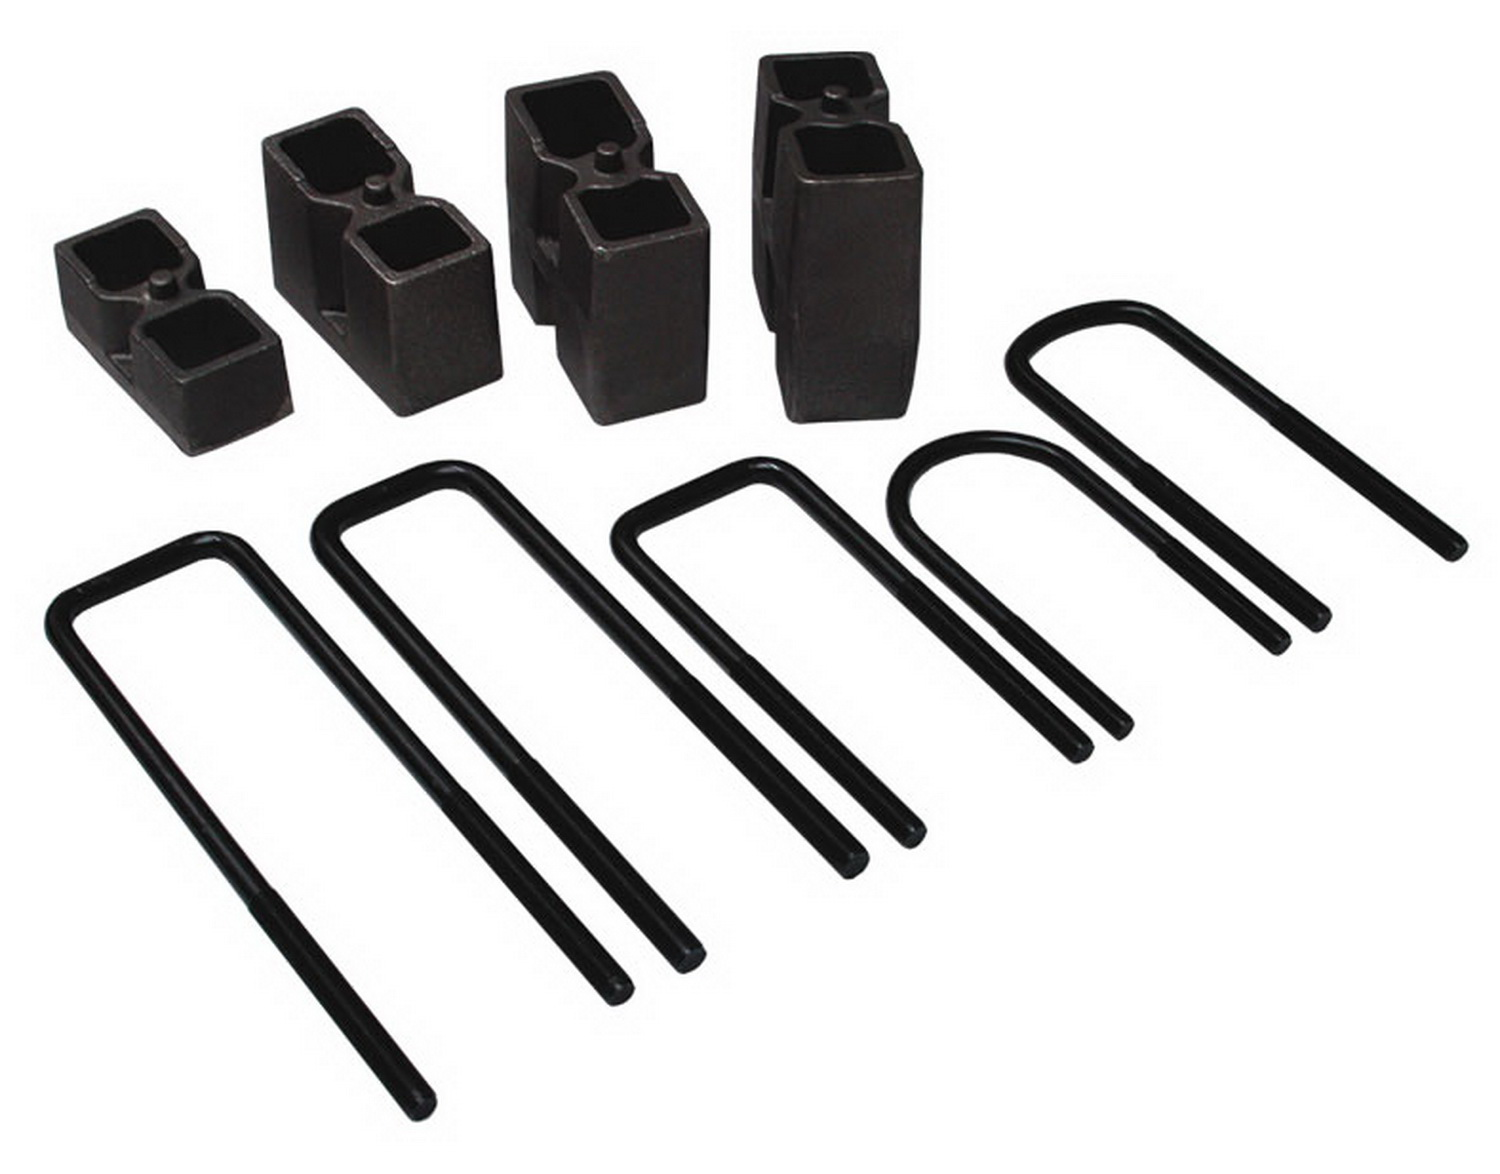 Skyjacker BUK4593 - Skyjacker Blocks & U-Bolt Kits